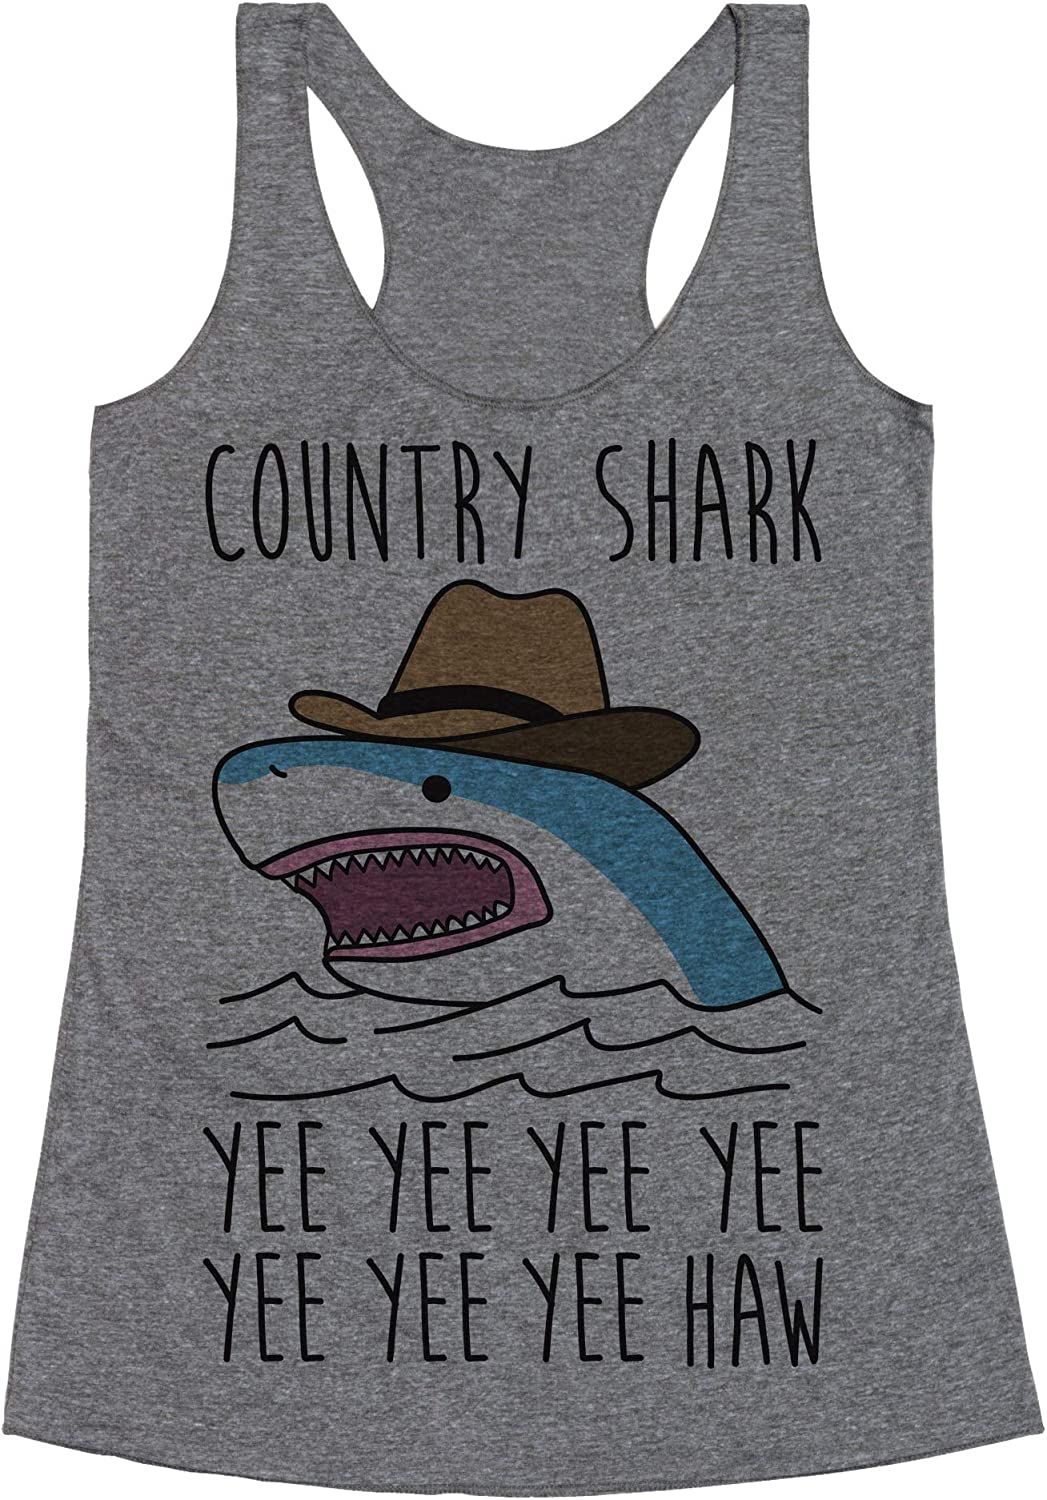 LookHUMAN Country Shark Yee Haw Heathered Gray Women's Racerback Tank